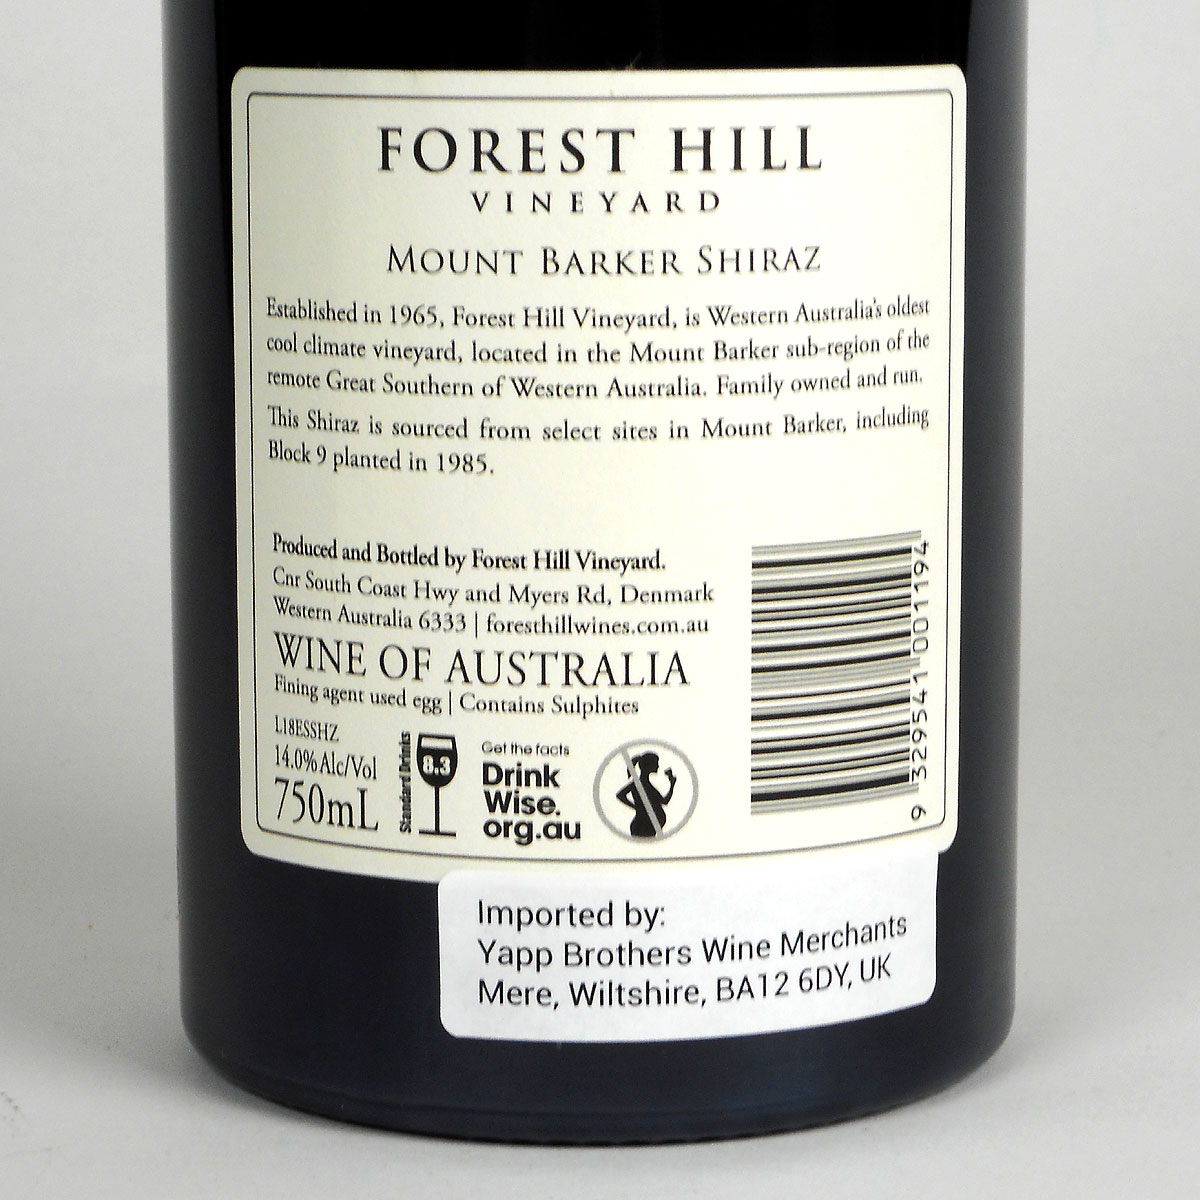 Forest Hill Vineyard: 'Estate' Shiraz 2018 - Bottle Rear Label